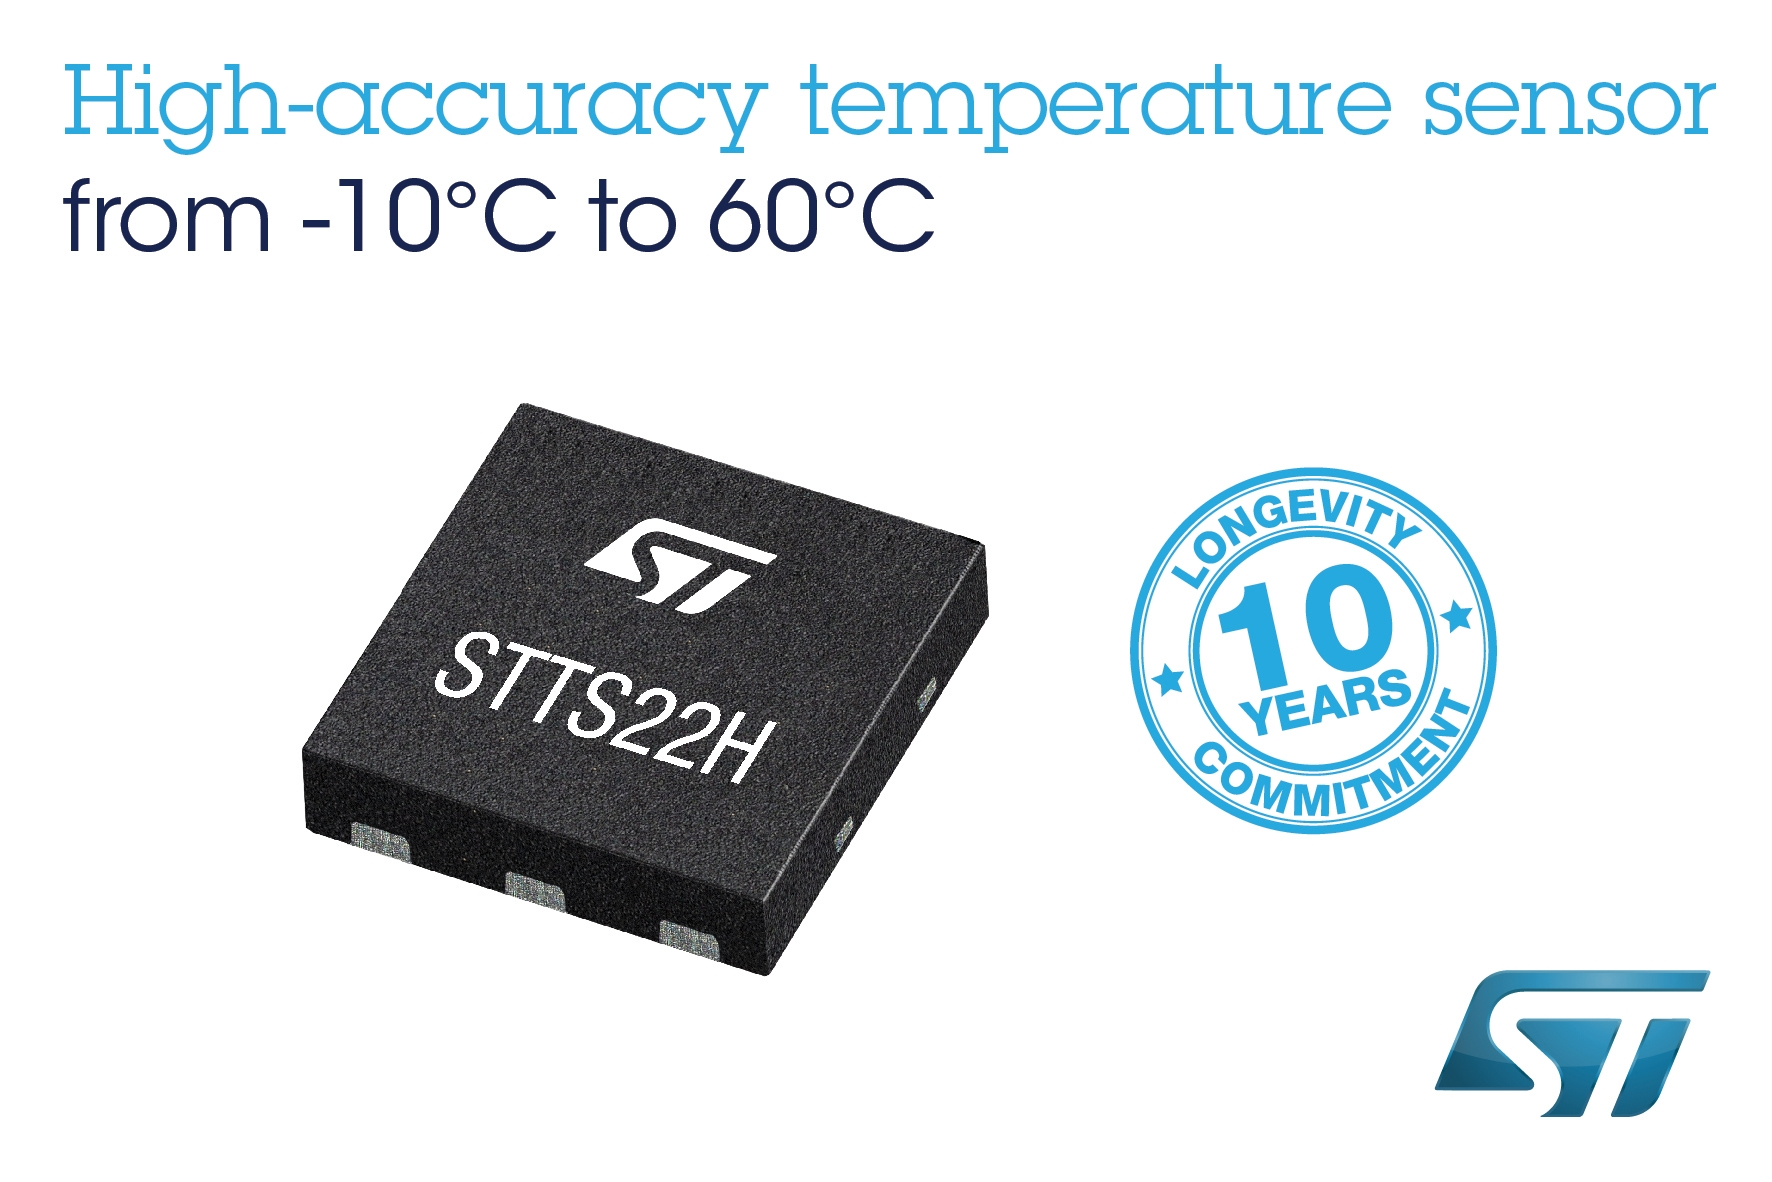 STTS22H – Low-voltage, ultra-low-power, 0.5 °C accuracy I2C/SMBus 3.0 temperature sensor